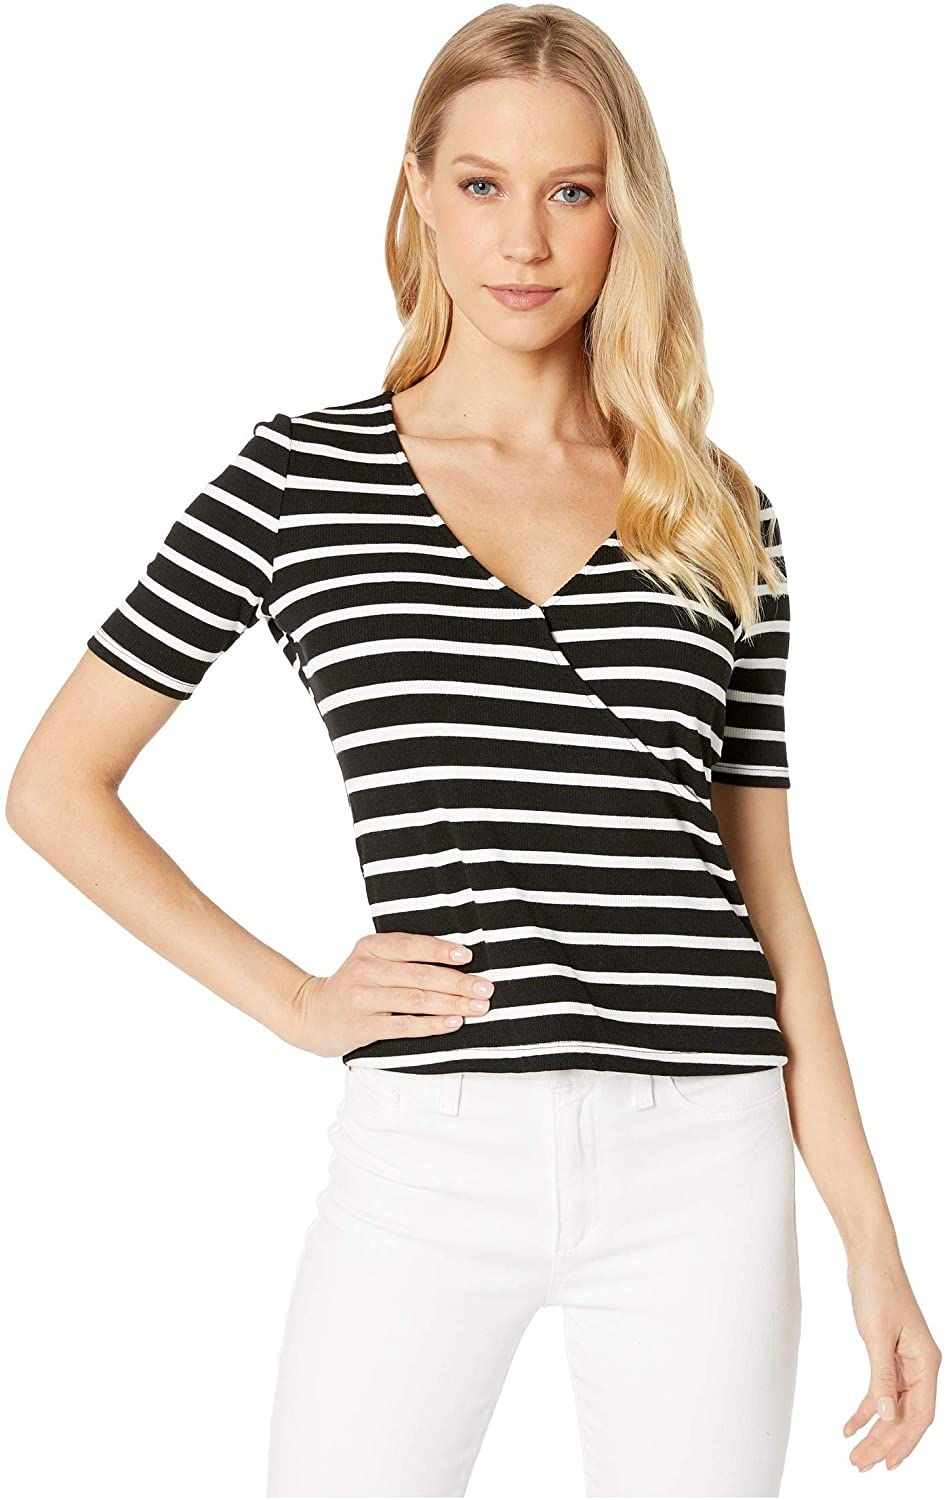 Sanctuary Essentials Wrap Top Black/White Stripe XS (US 2)